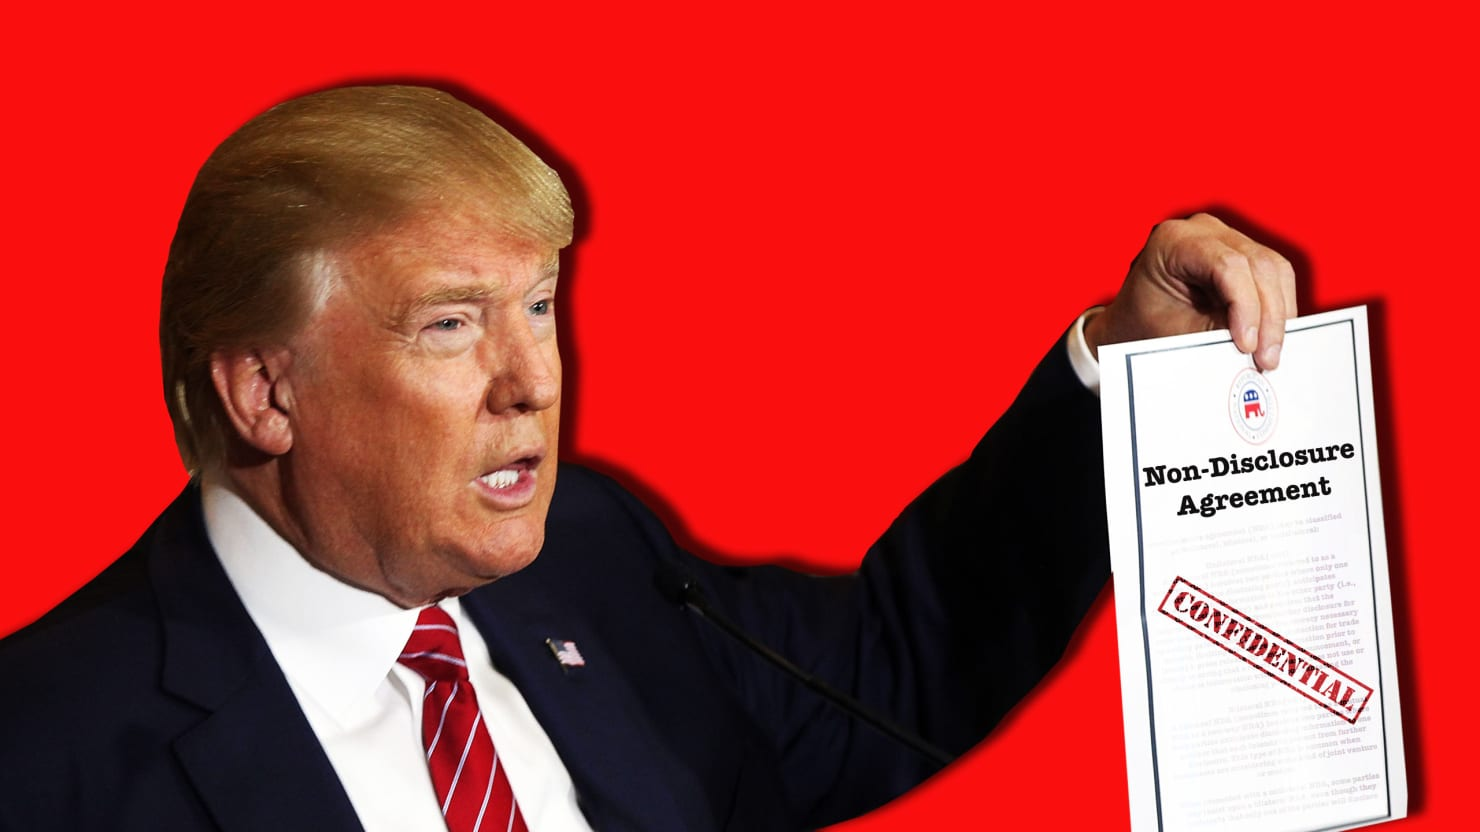 Trump Cant Legally Make New Staff Sign Ndasyet